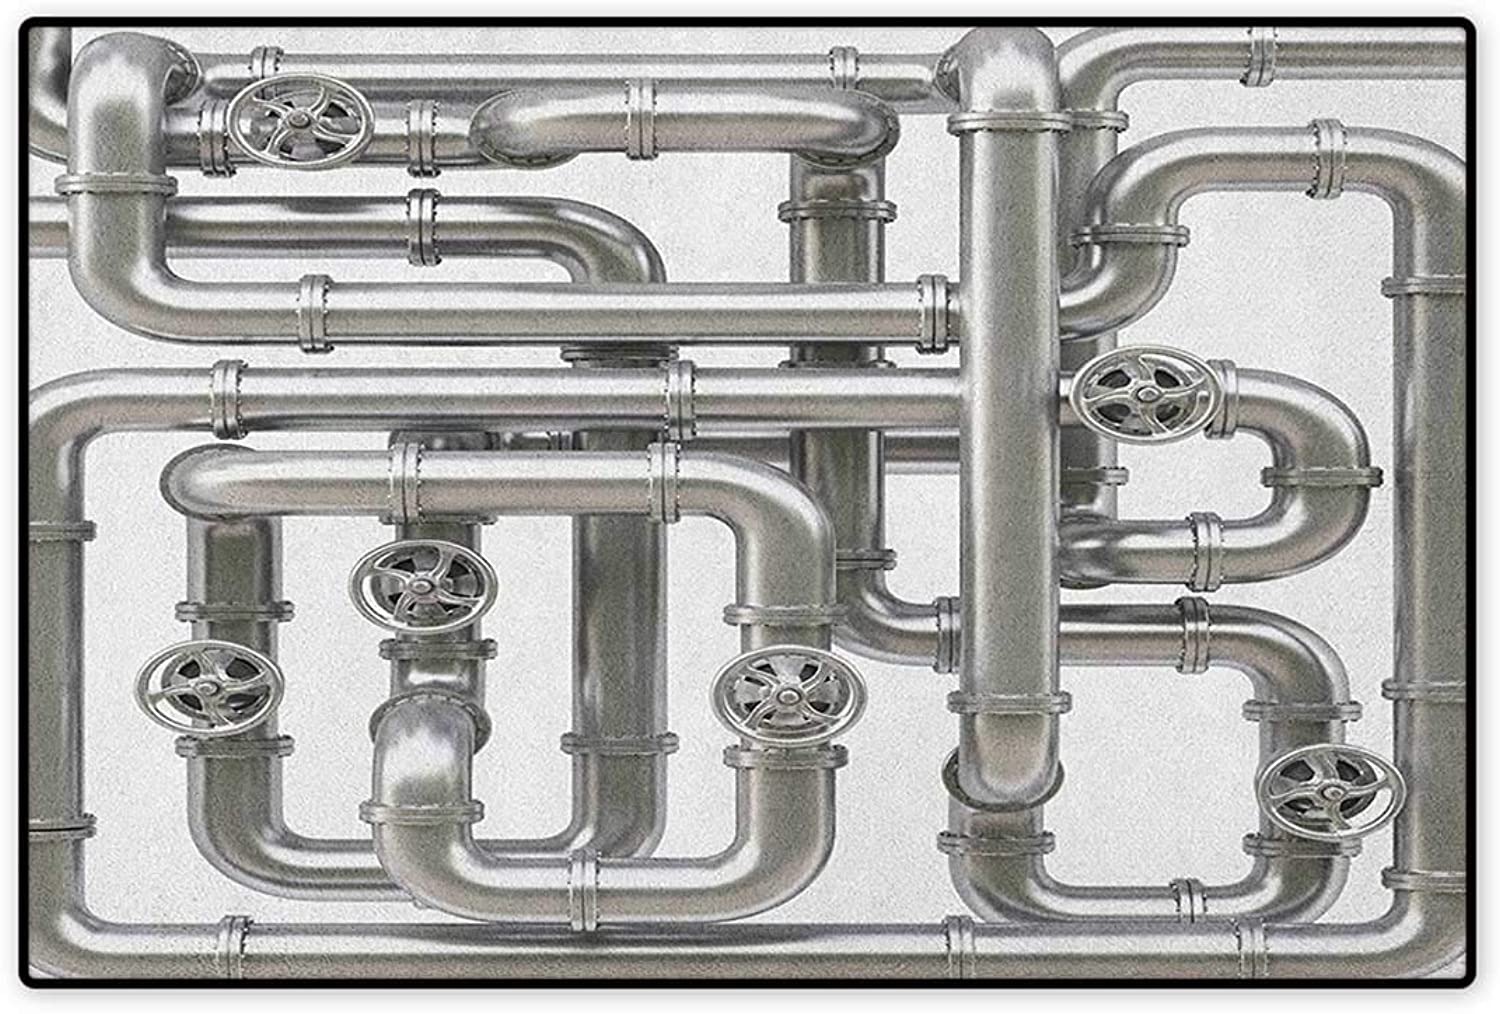 Industrial,Door Mat Indoors,Maze of Pipelines Faucets and Valve Gasoline Engineering Themed Print,Indoors Doorroom Mats Non Slip,Silver and White,Size,32 x48  (W80cm x L120cm)